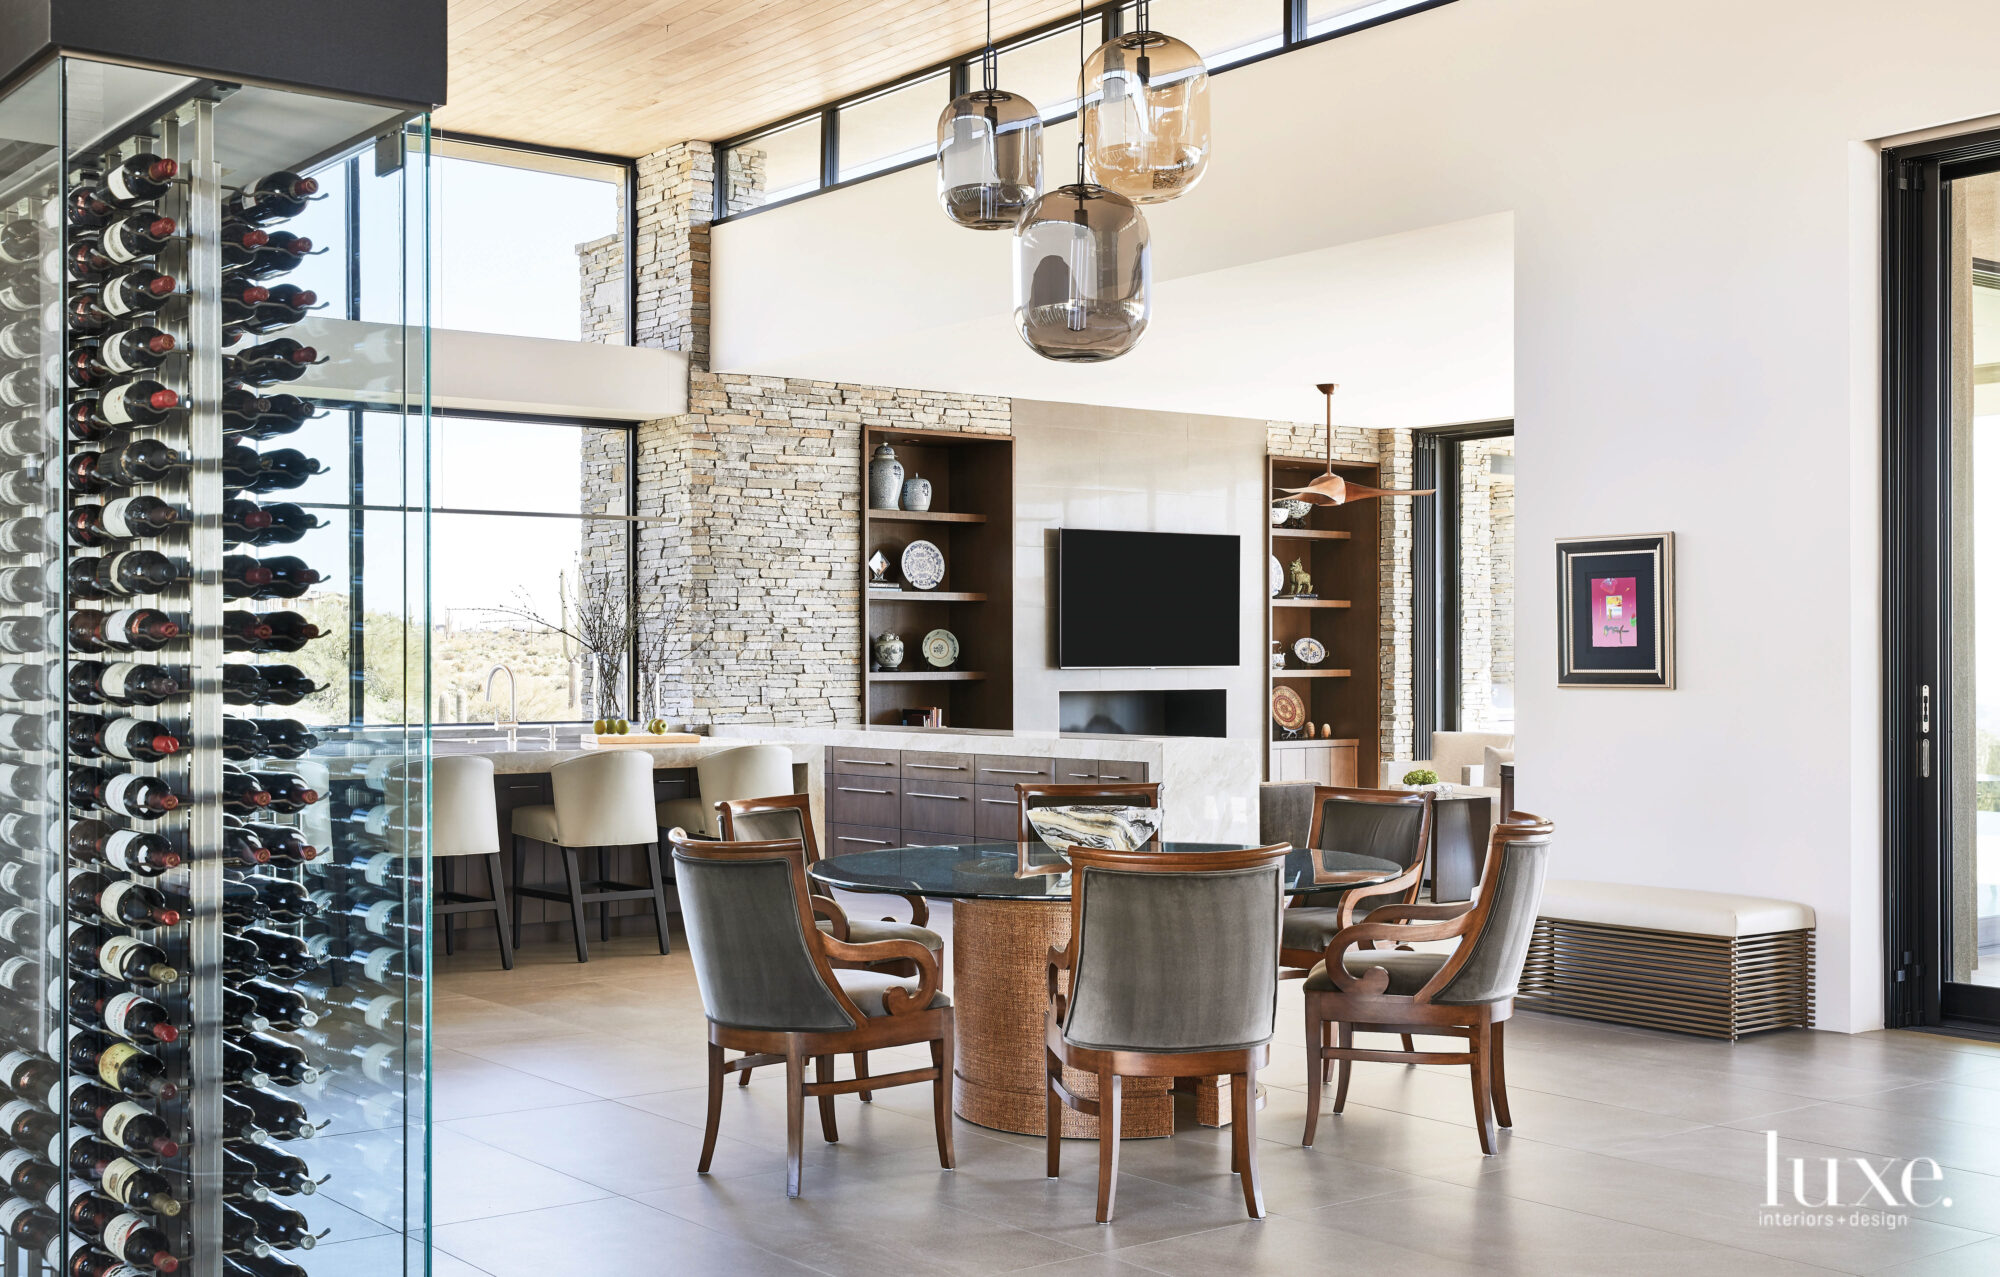 A dining area with a round glass-topped table and a smoked-glass pendant overhead sits near a glass wine wall.